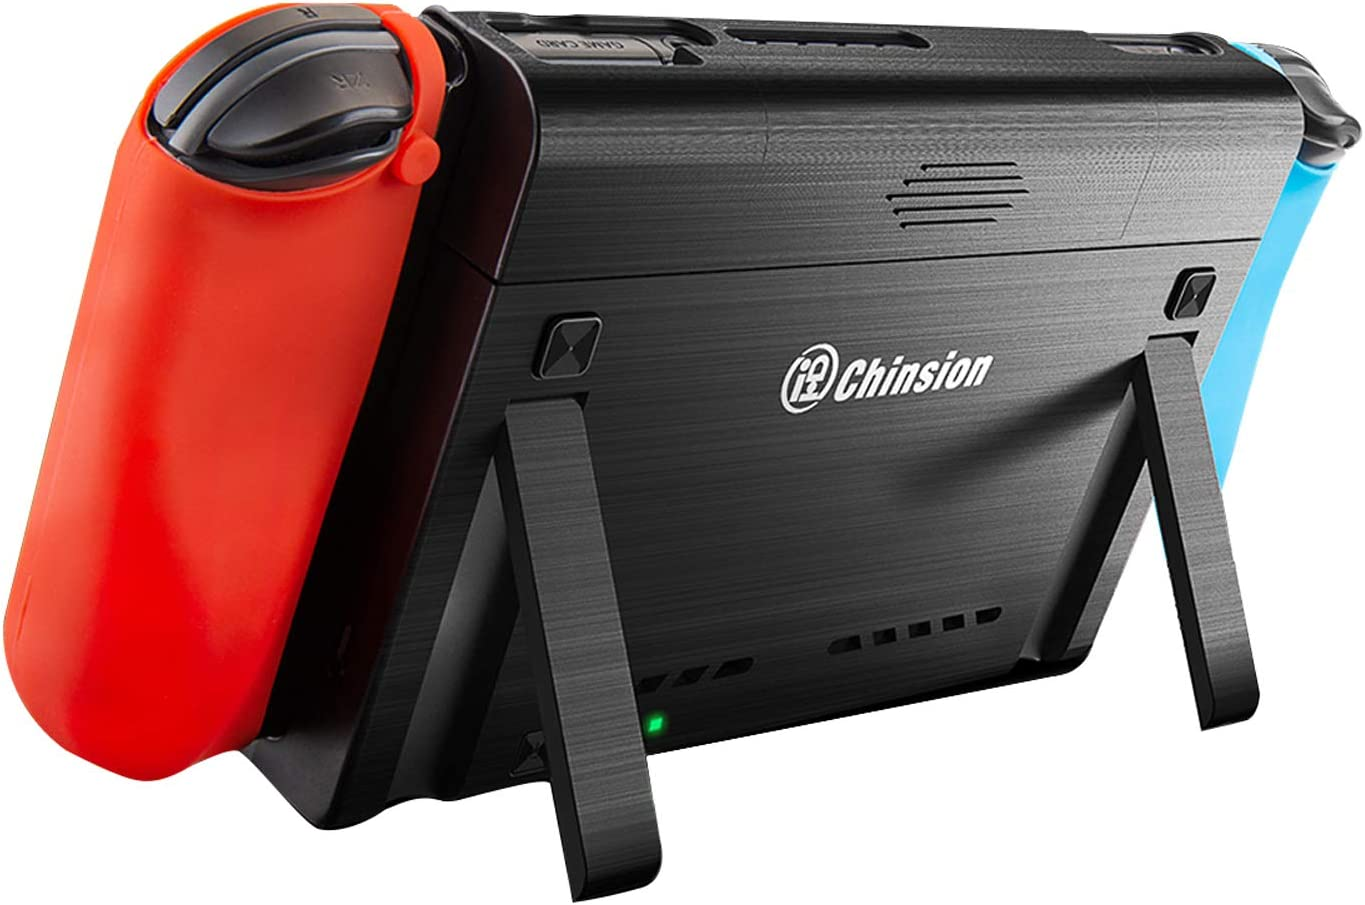 ID CHINSION 10000mAh Battery Charger Case for Nintendo Switch, Portable Pop-Up Backup Extended Travel Battery Pack for Switch Games and Accessories, ...